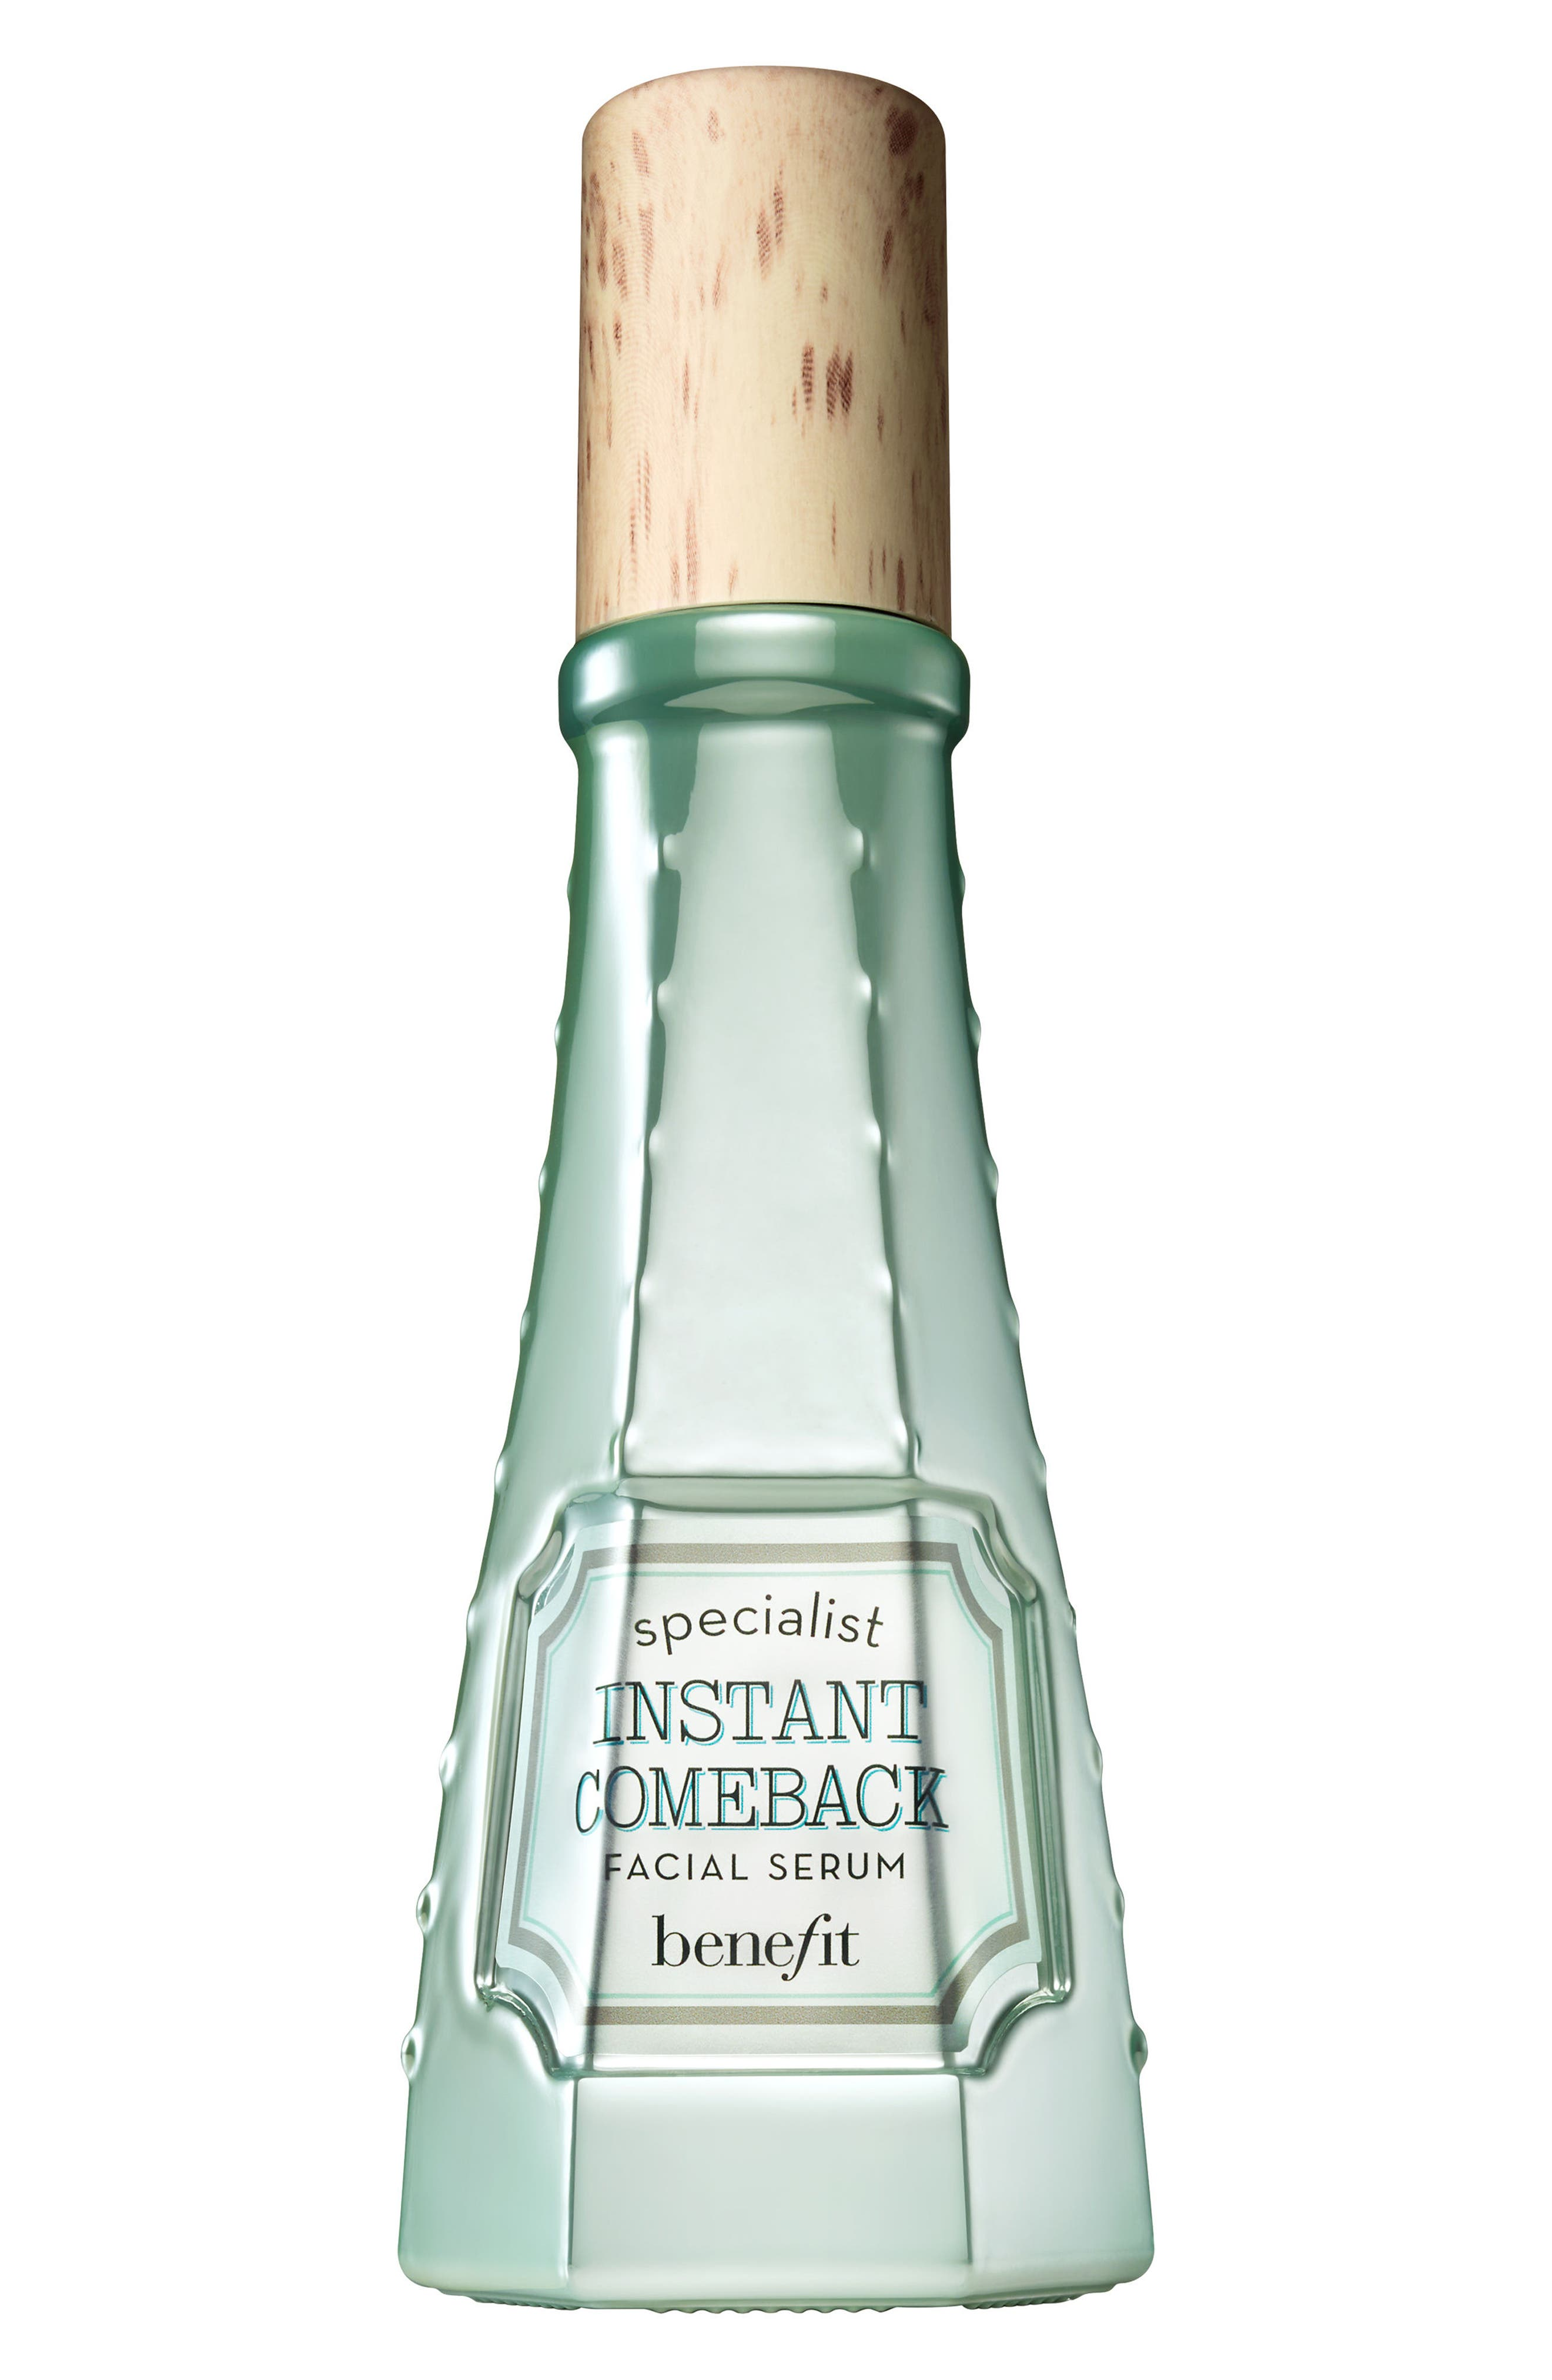 Benefit Instant Comeback Age-Defying Facial Serum,                             Main thumbnail 1, color,                             000